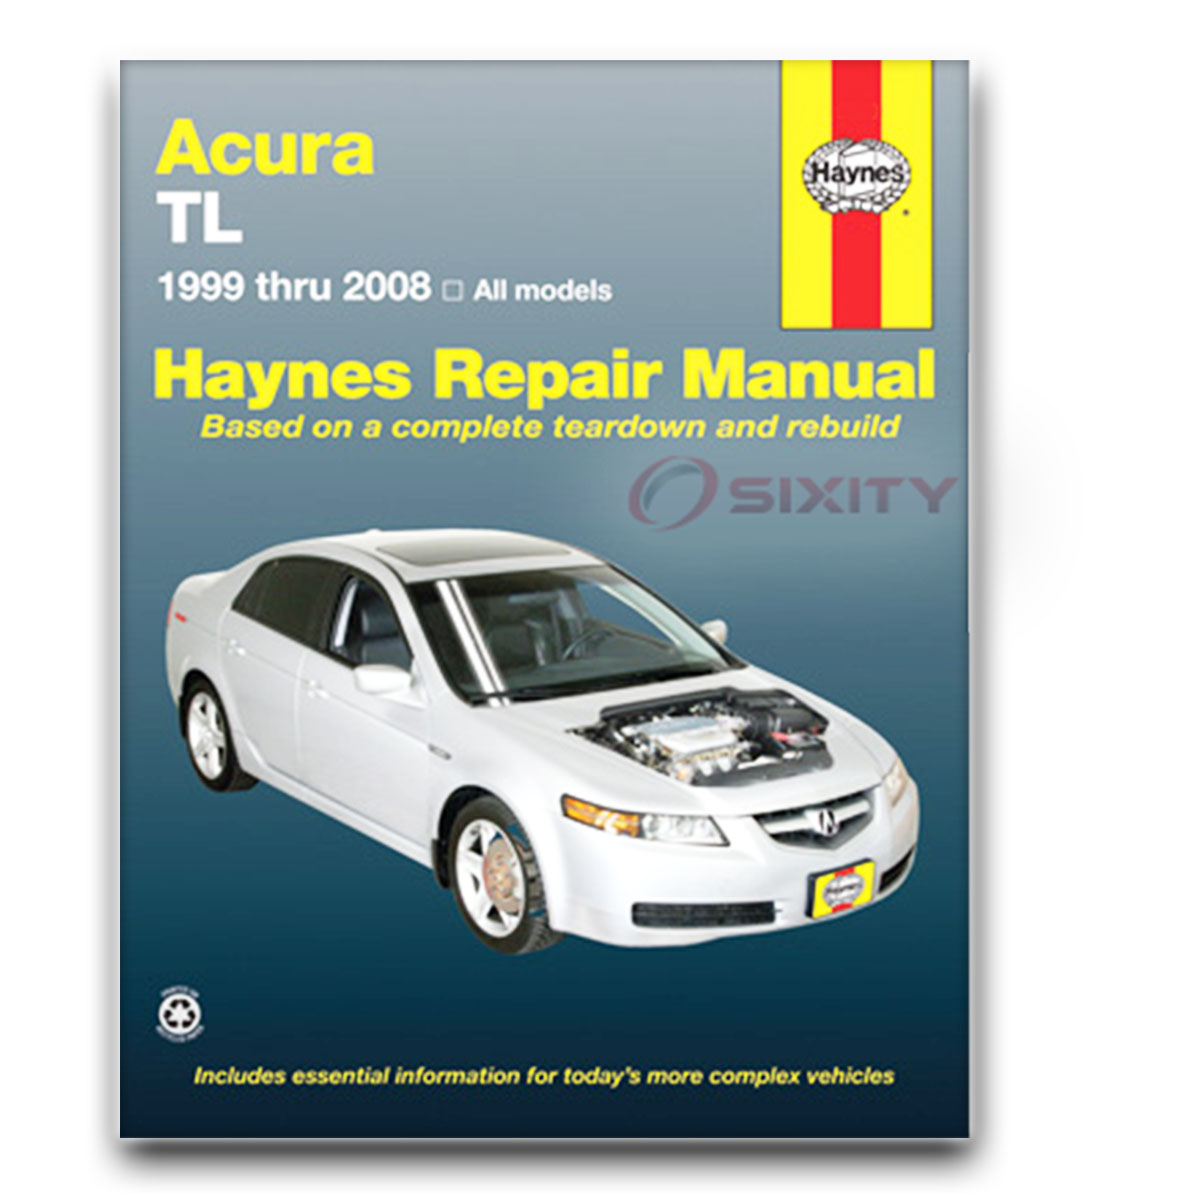 acura tl haynes repair manual base type s shop service garage book rh ebay com VW Golf GTI 2006 Struts for 2006 VW Golf GLS